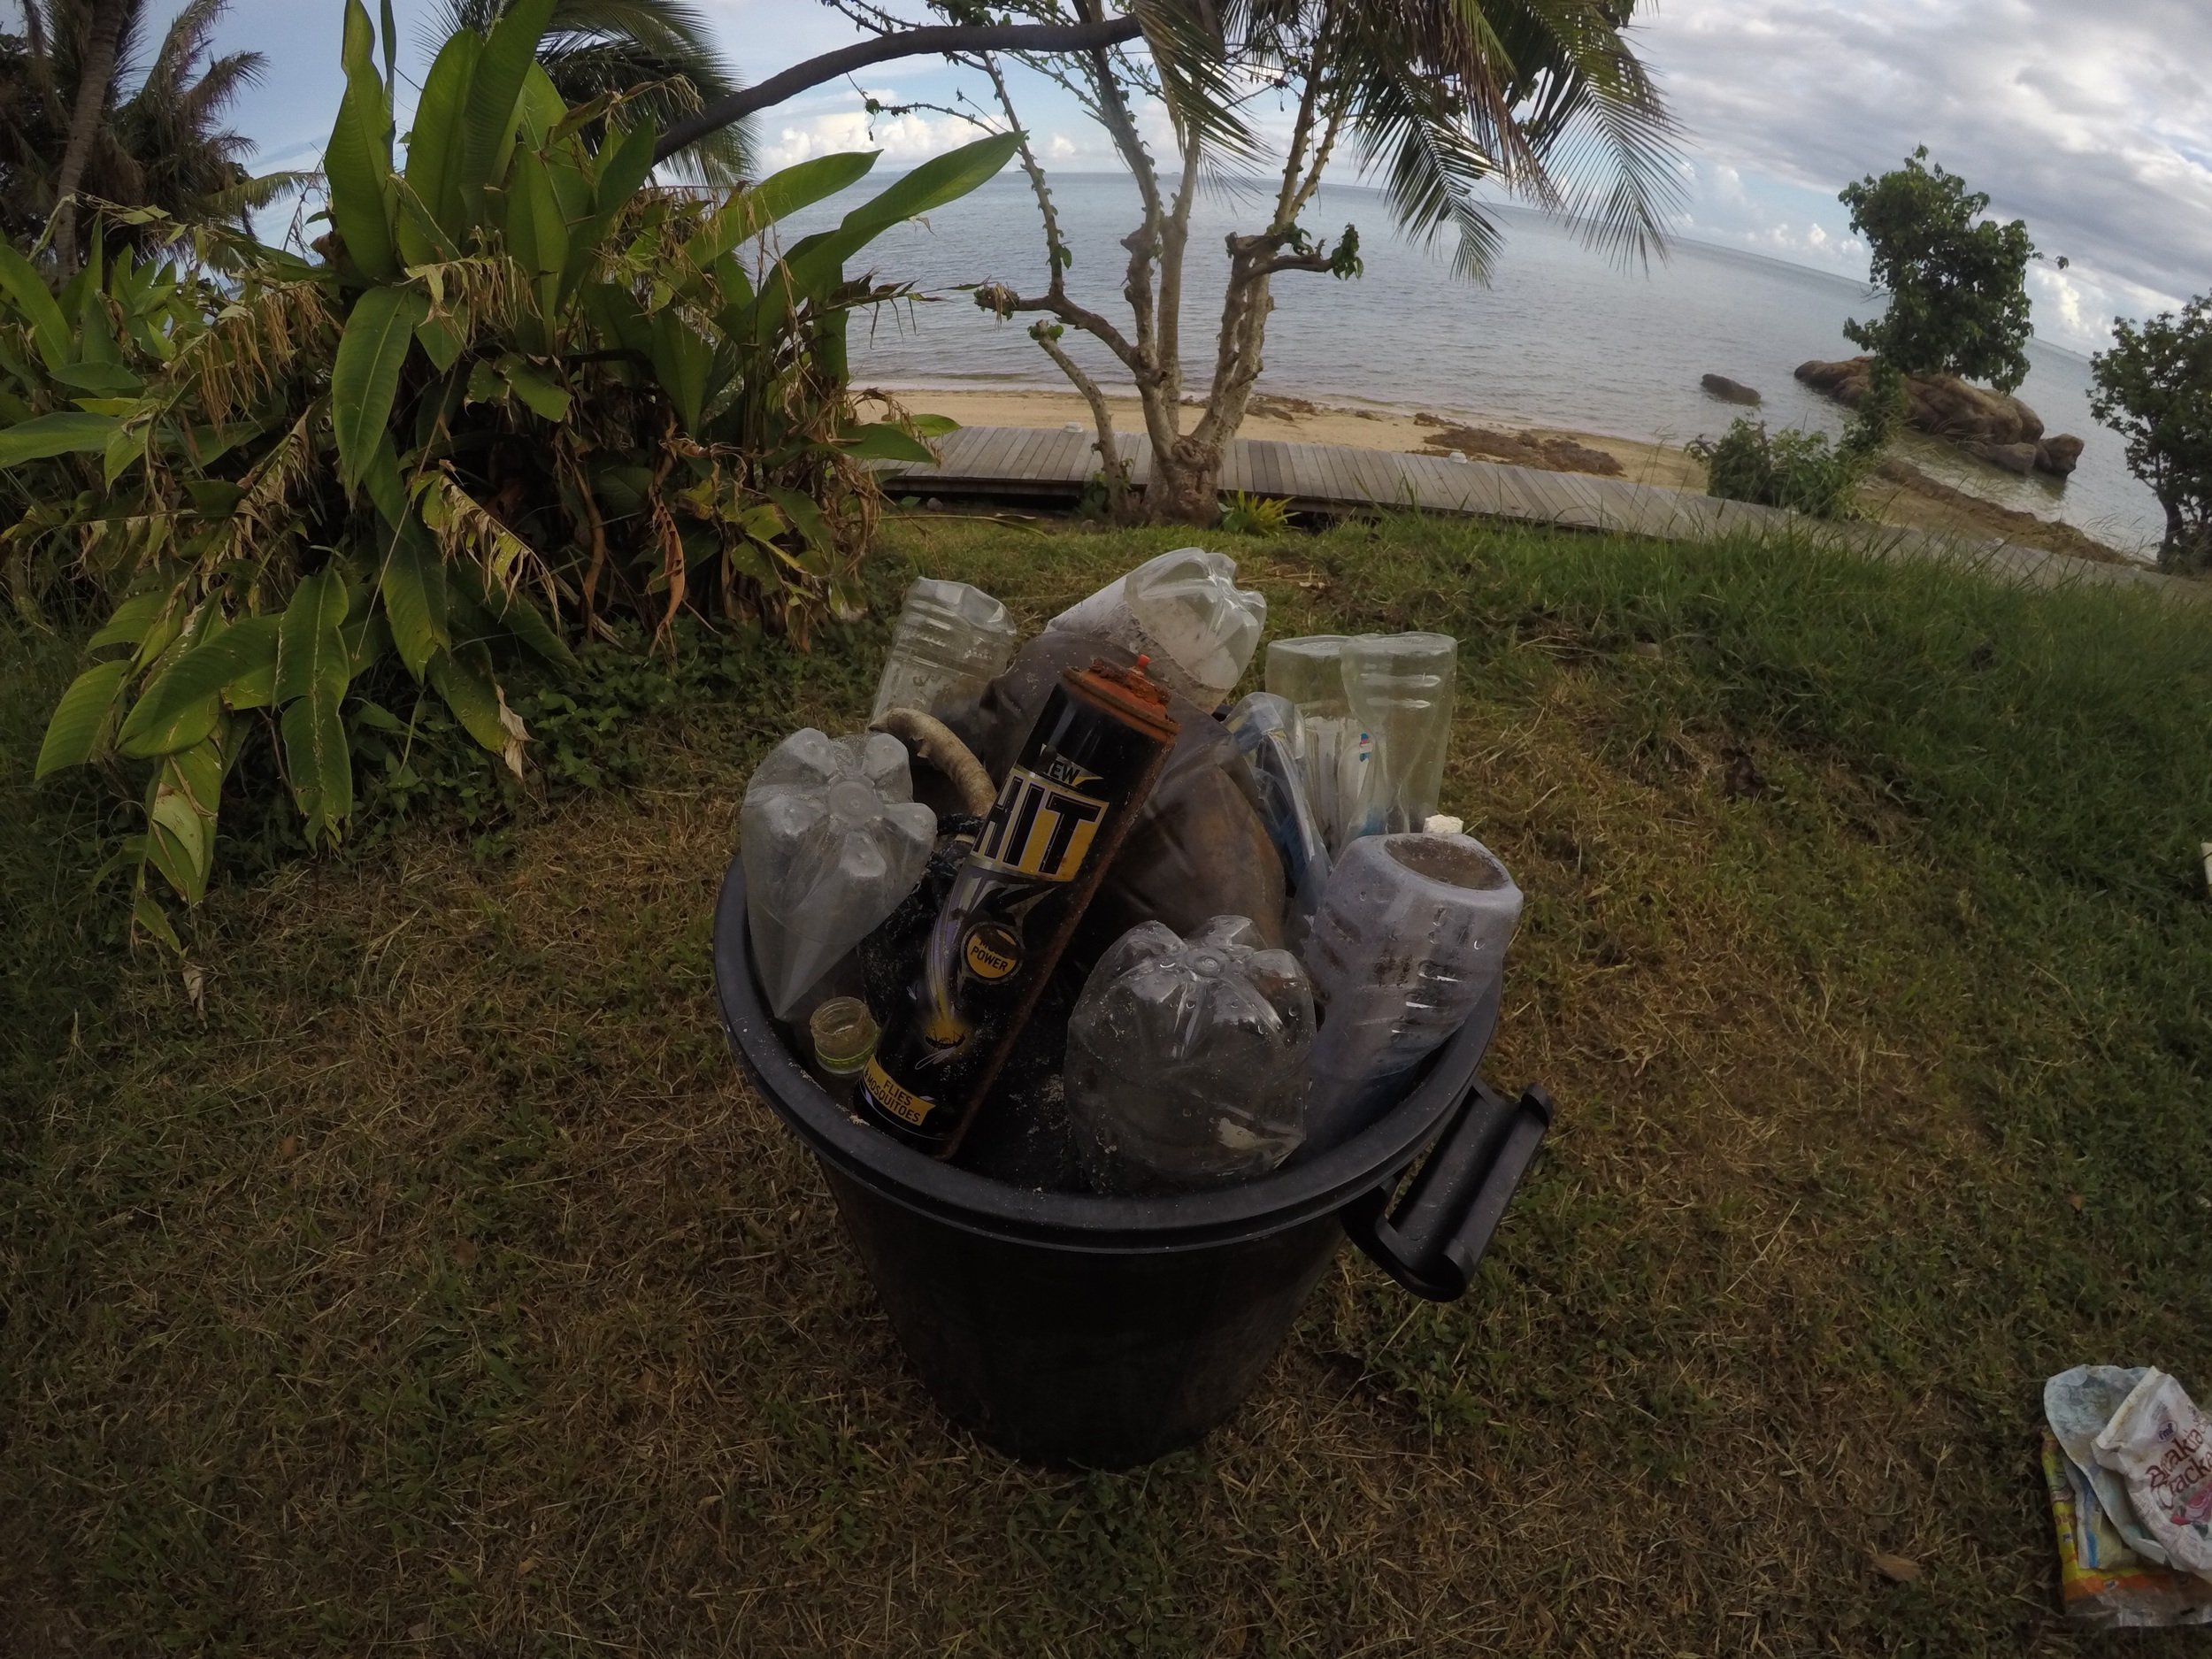 One of two buckets of trash collected for our fuel sample. Only about 1/6 of the rubbish we cleaned up was useable in the Be-h